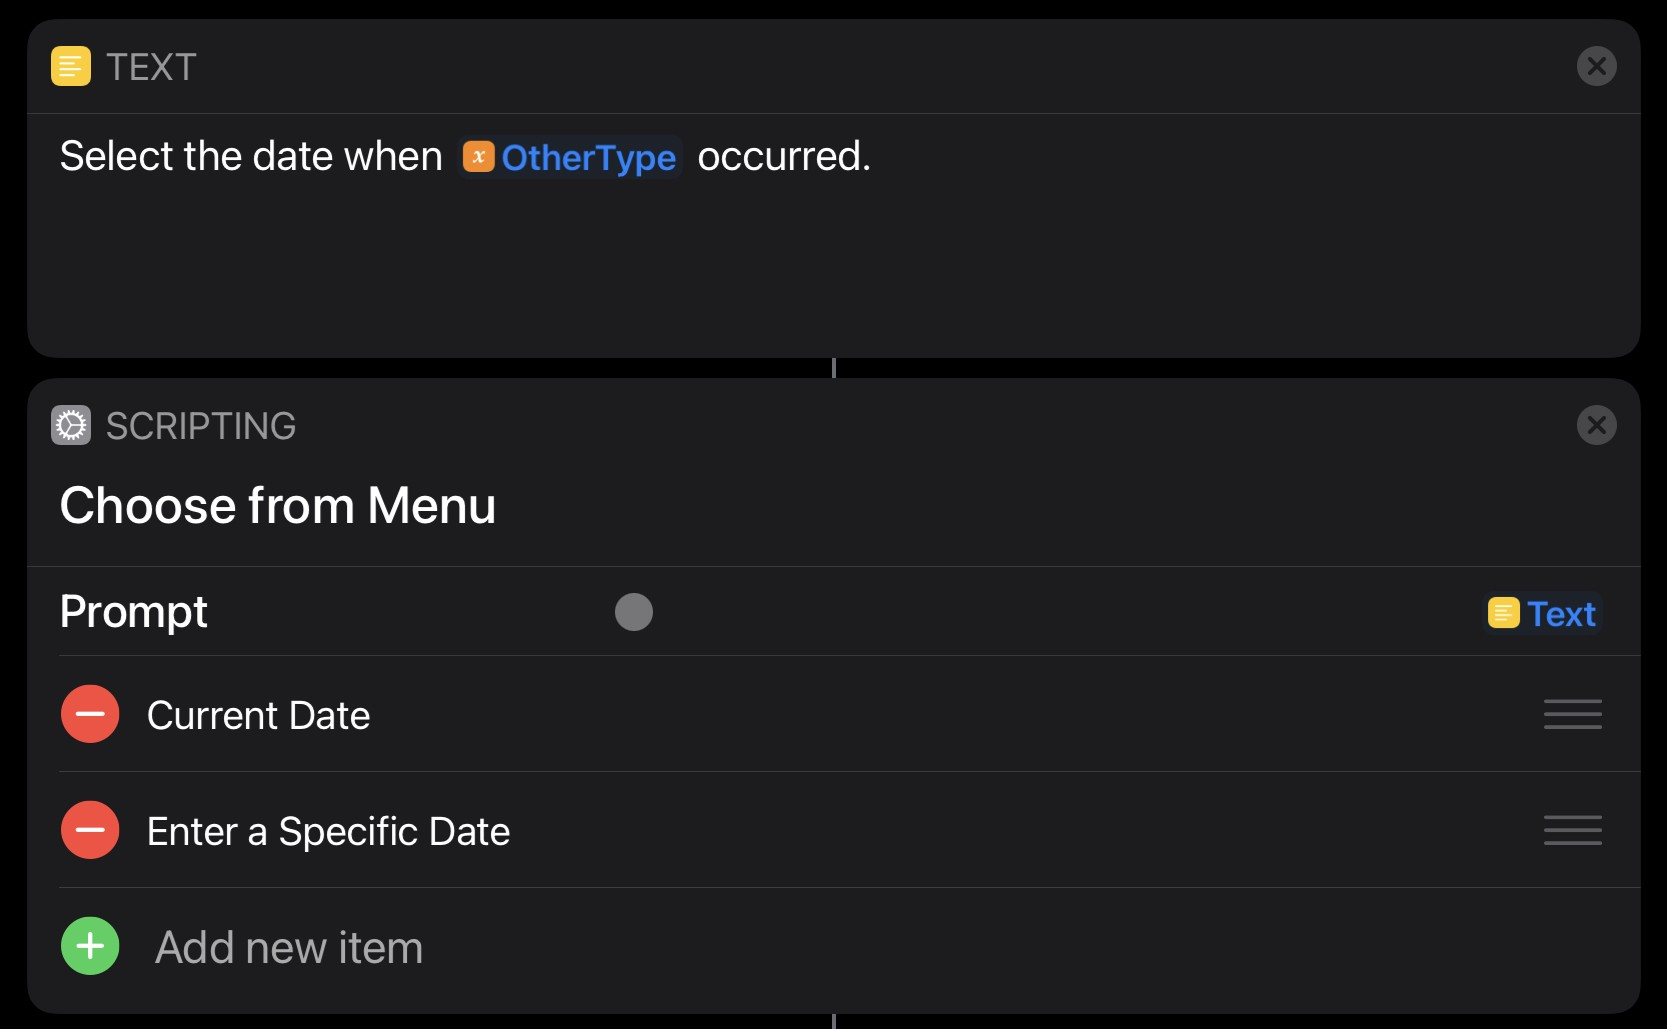 Getting the date from the user